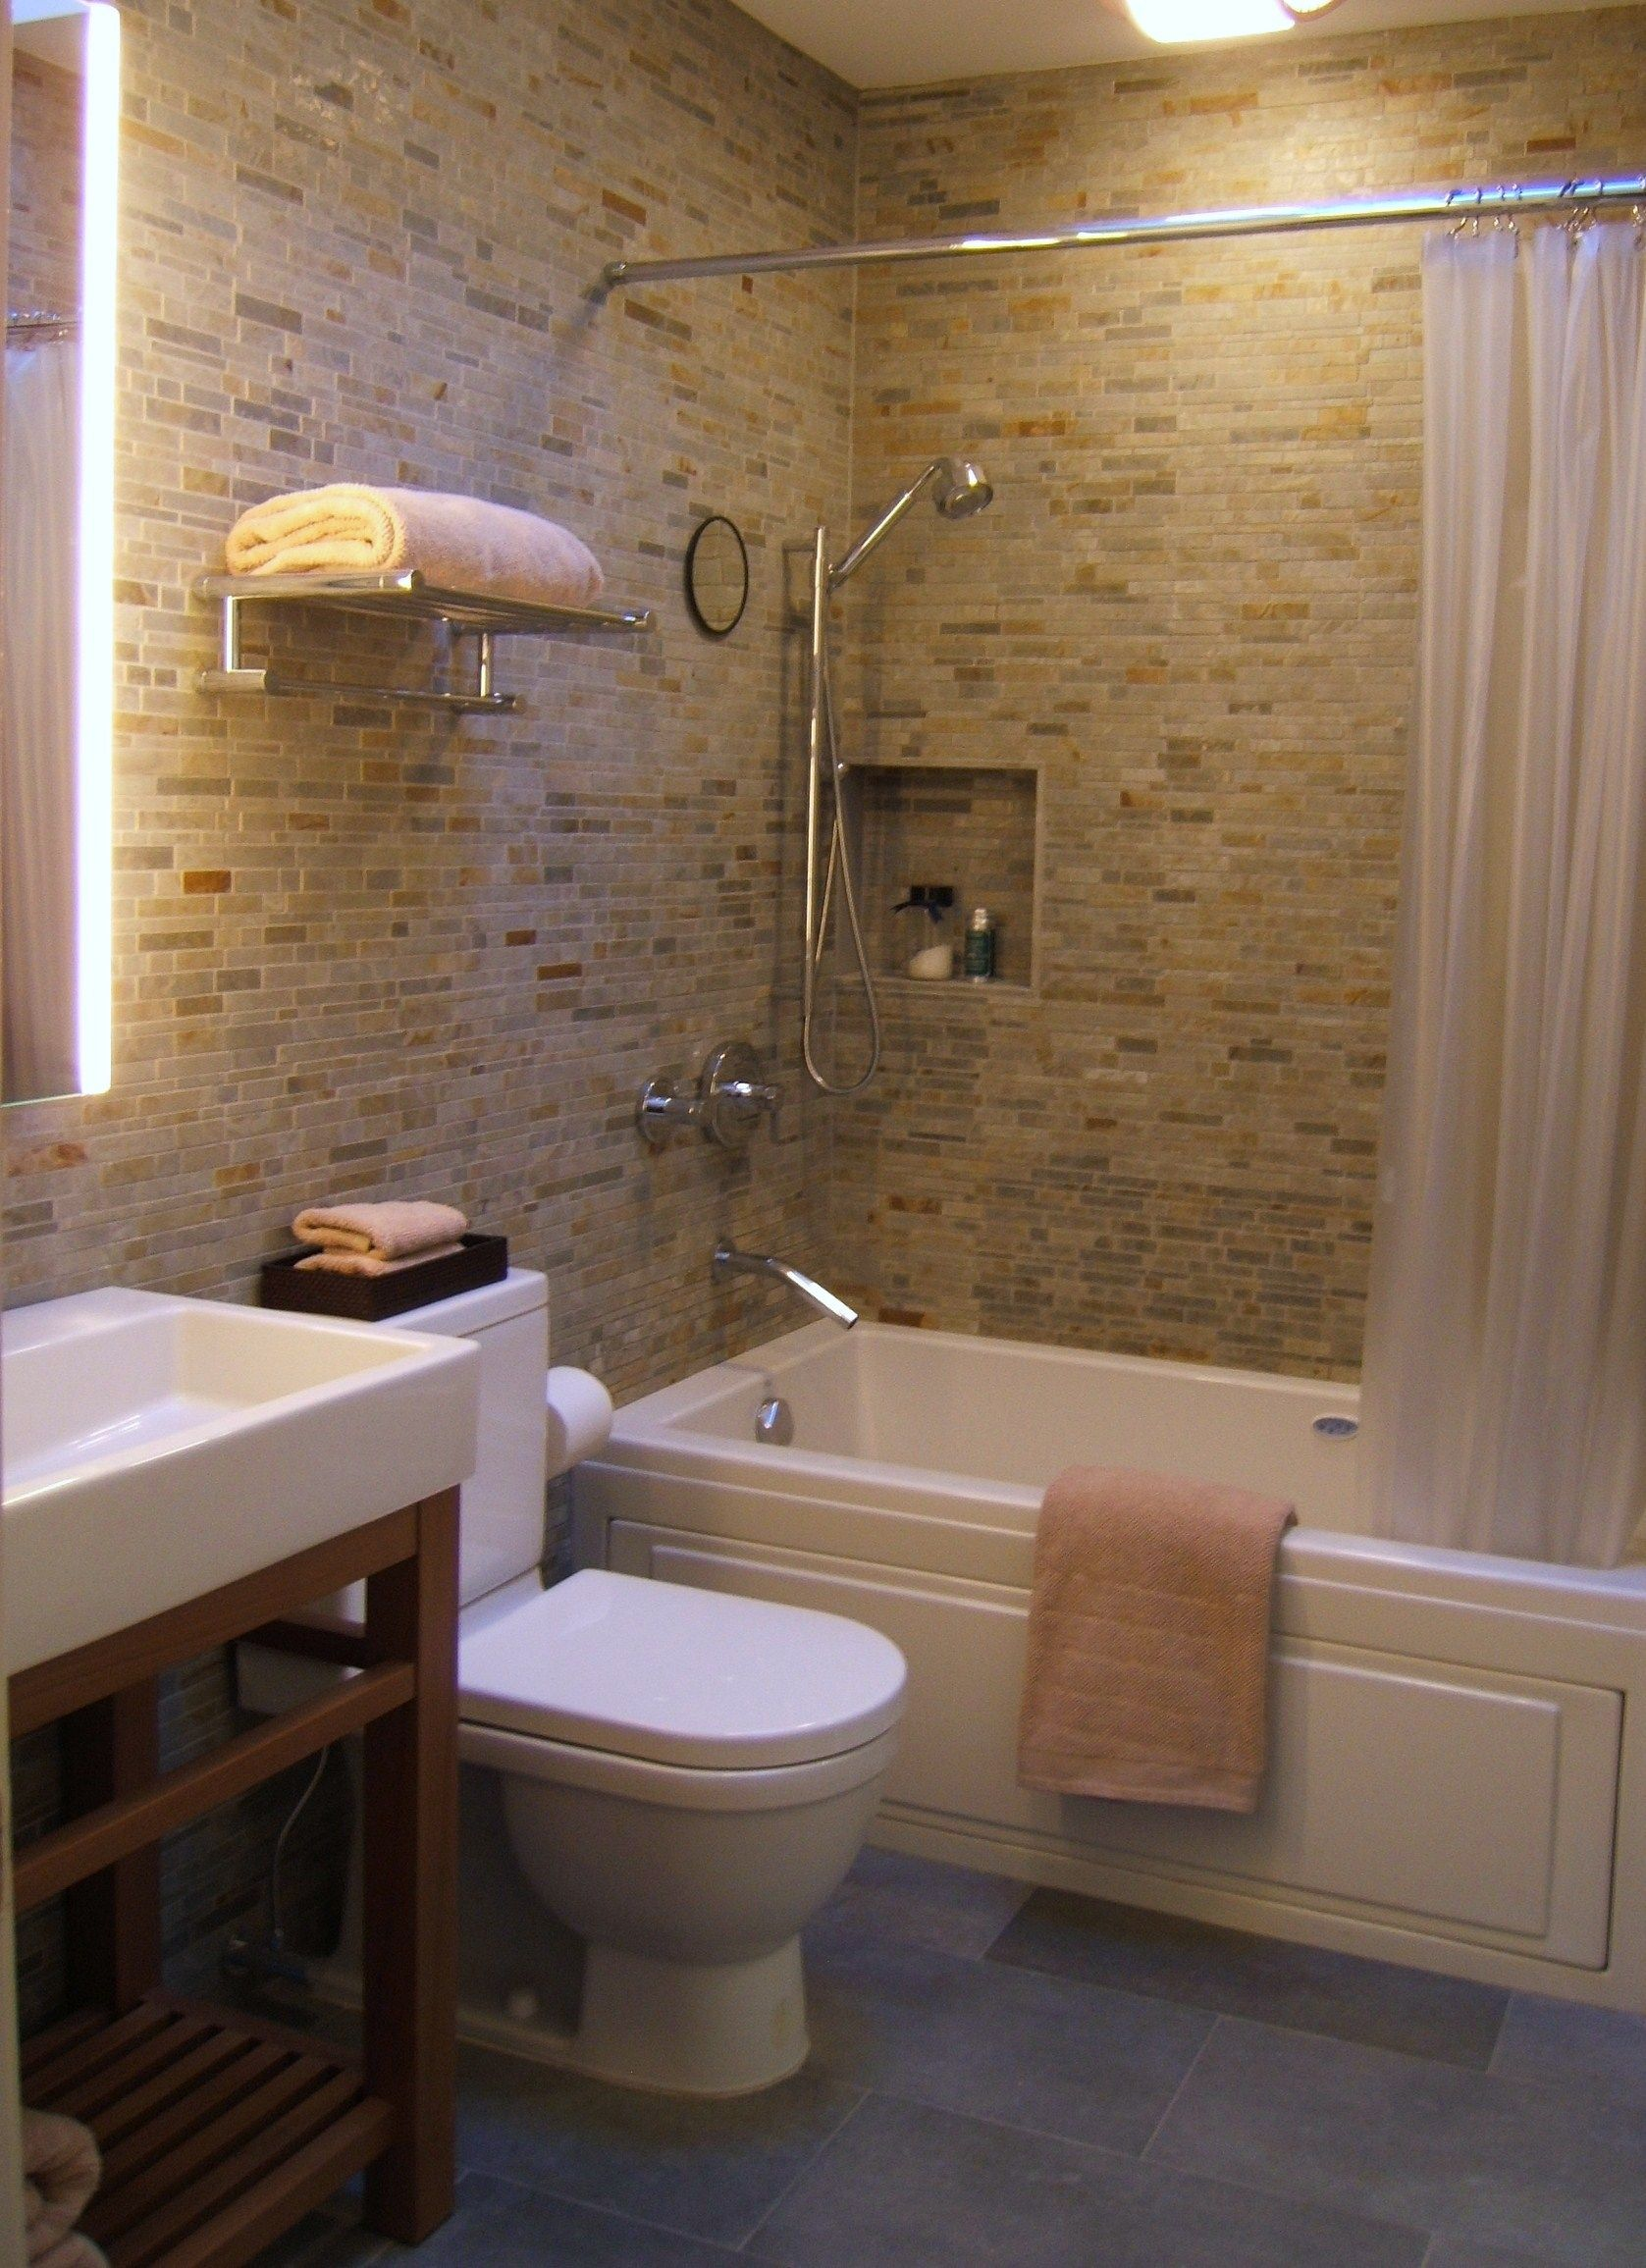 Small bathroom designs south africa small bath for Bathroom decor small